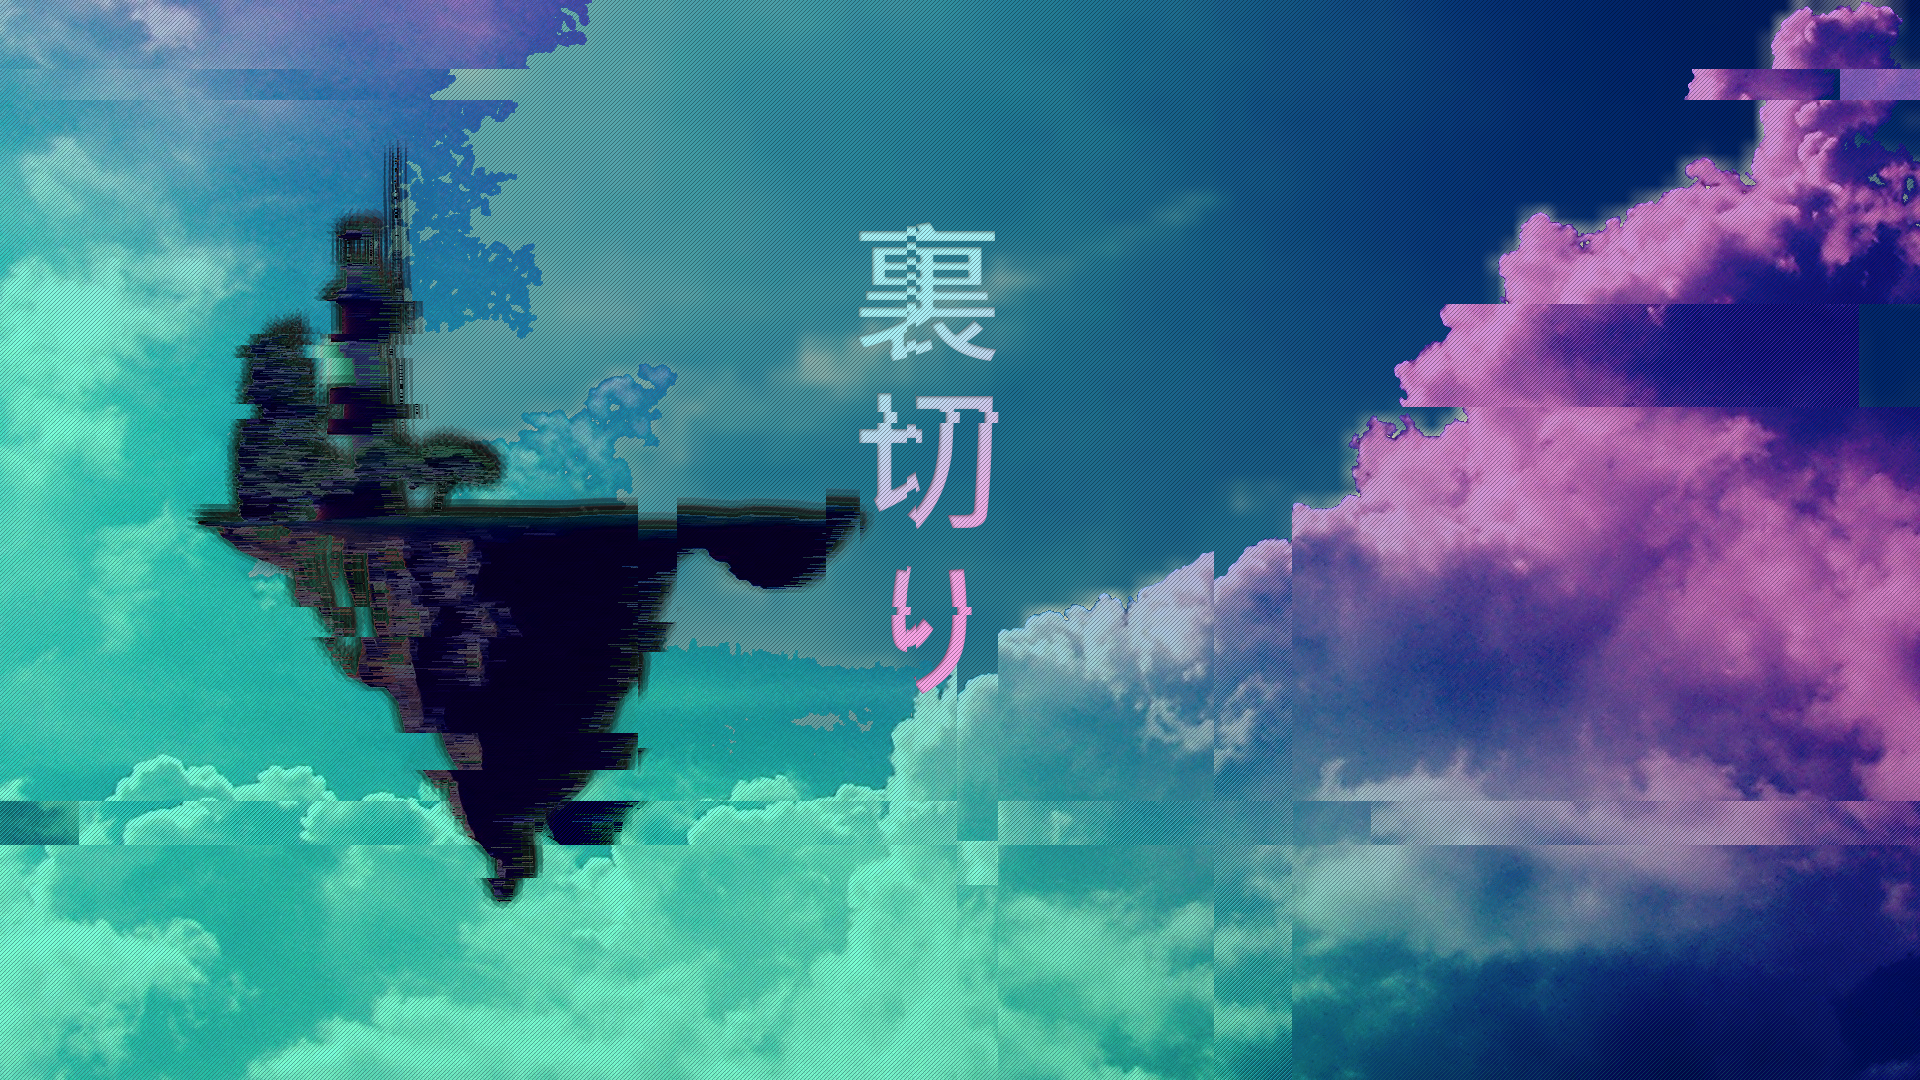 63 Vaporwave Hd Wallpapers Background Images Wallpaper Abyss